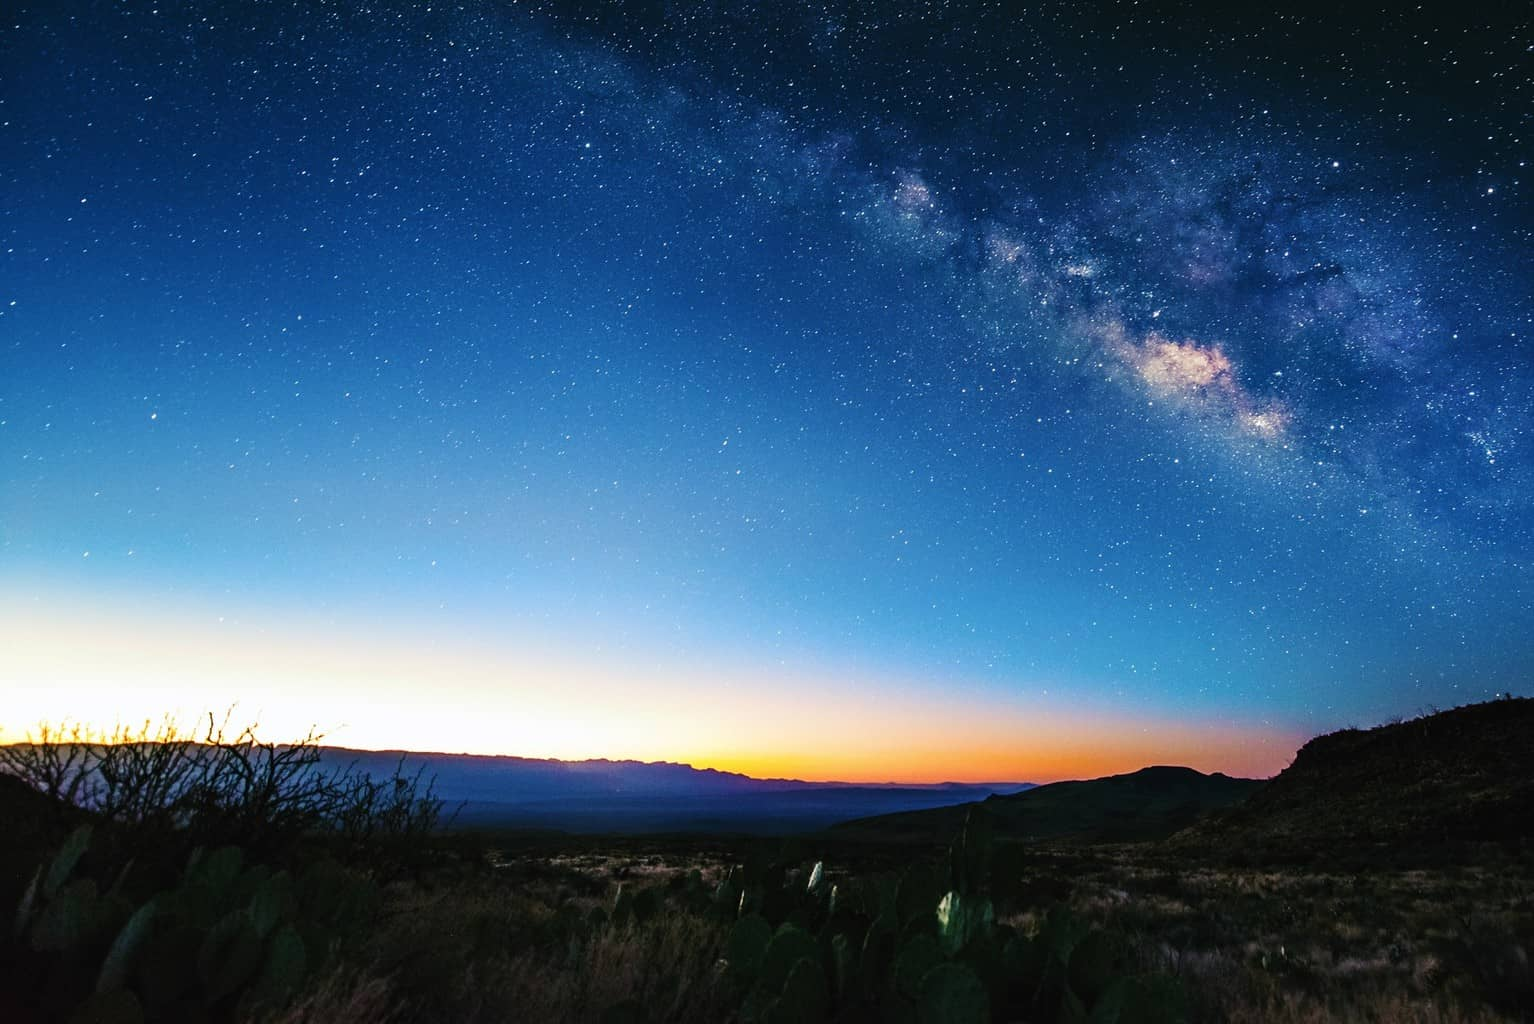 One of the harder photos I've shot in a while, the milky way with the sun starting to rise underneath. Big Bend, Texas.